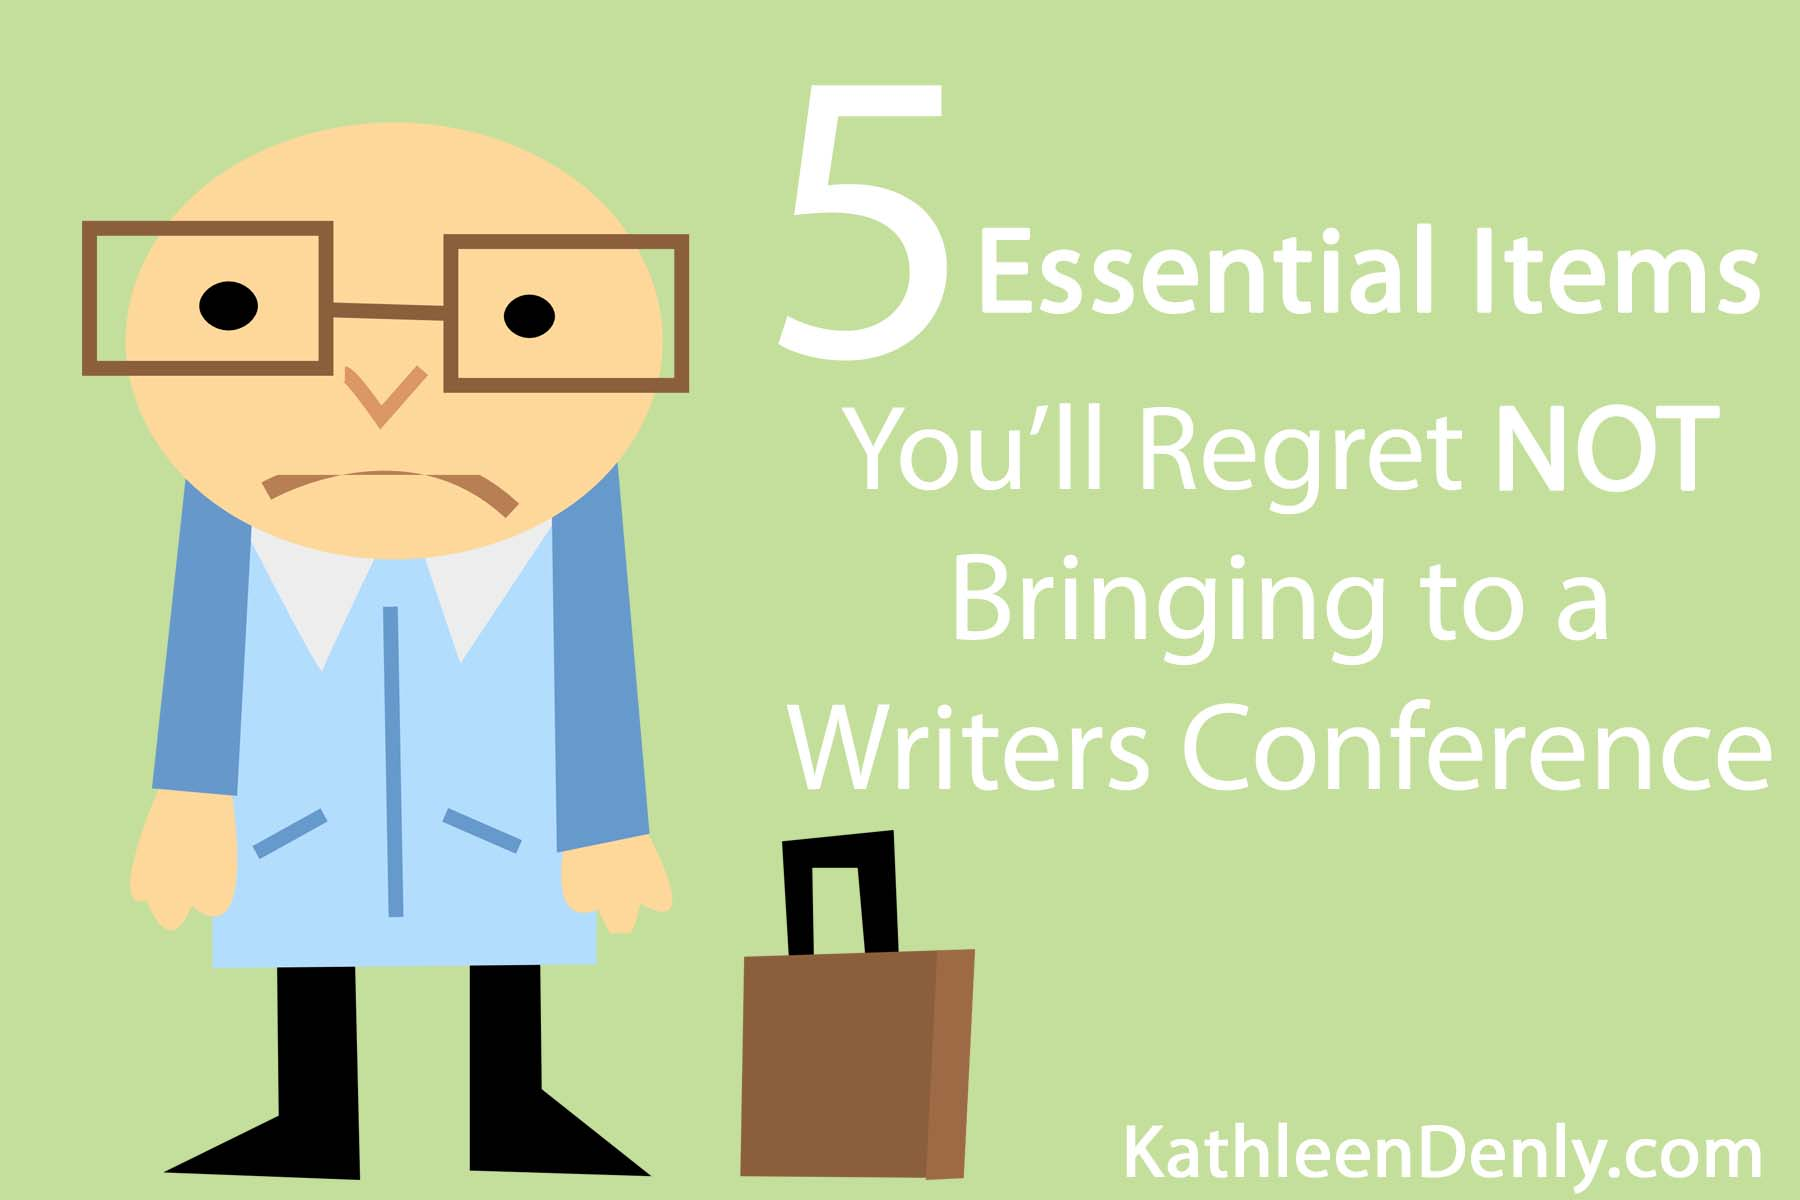 5 Essential Items You'll Regret Not Bringing to a Writers Conference by Kathleen Denly